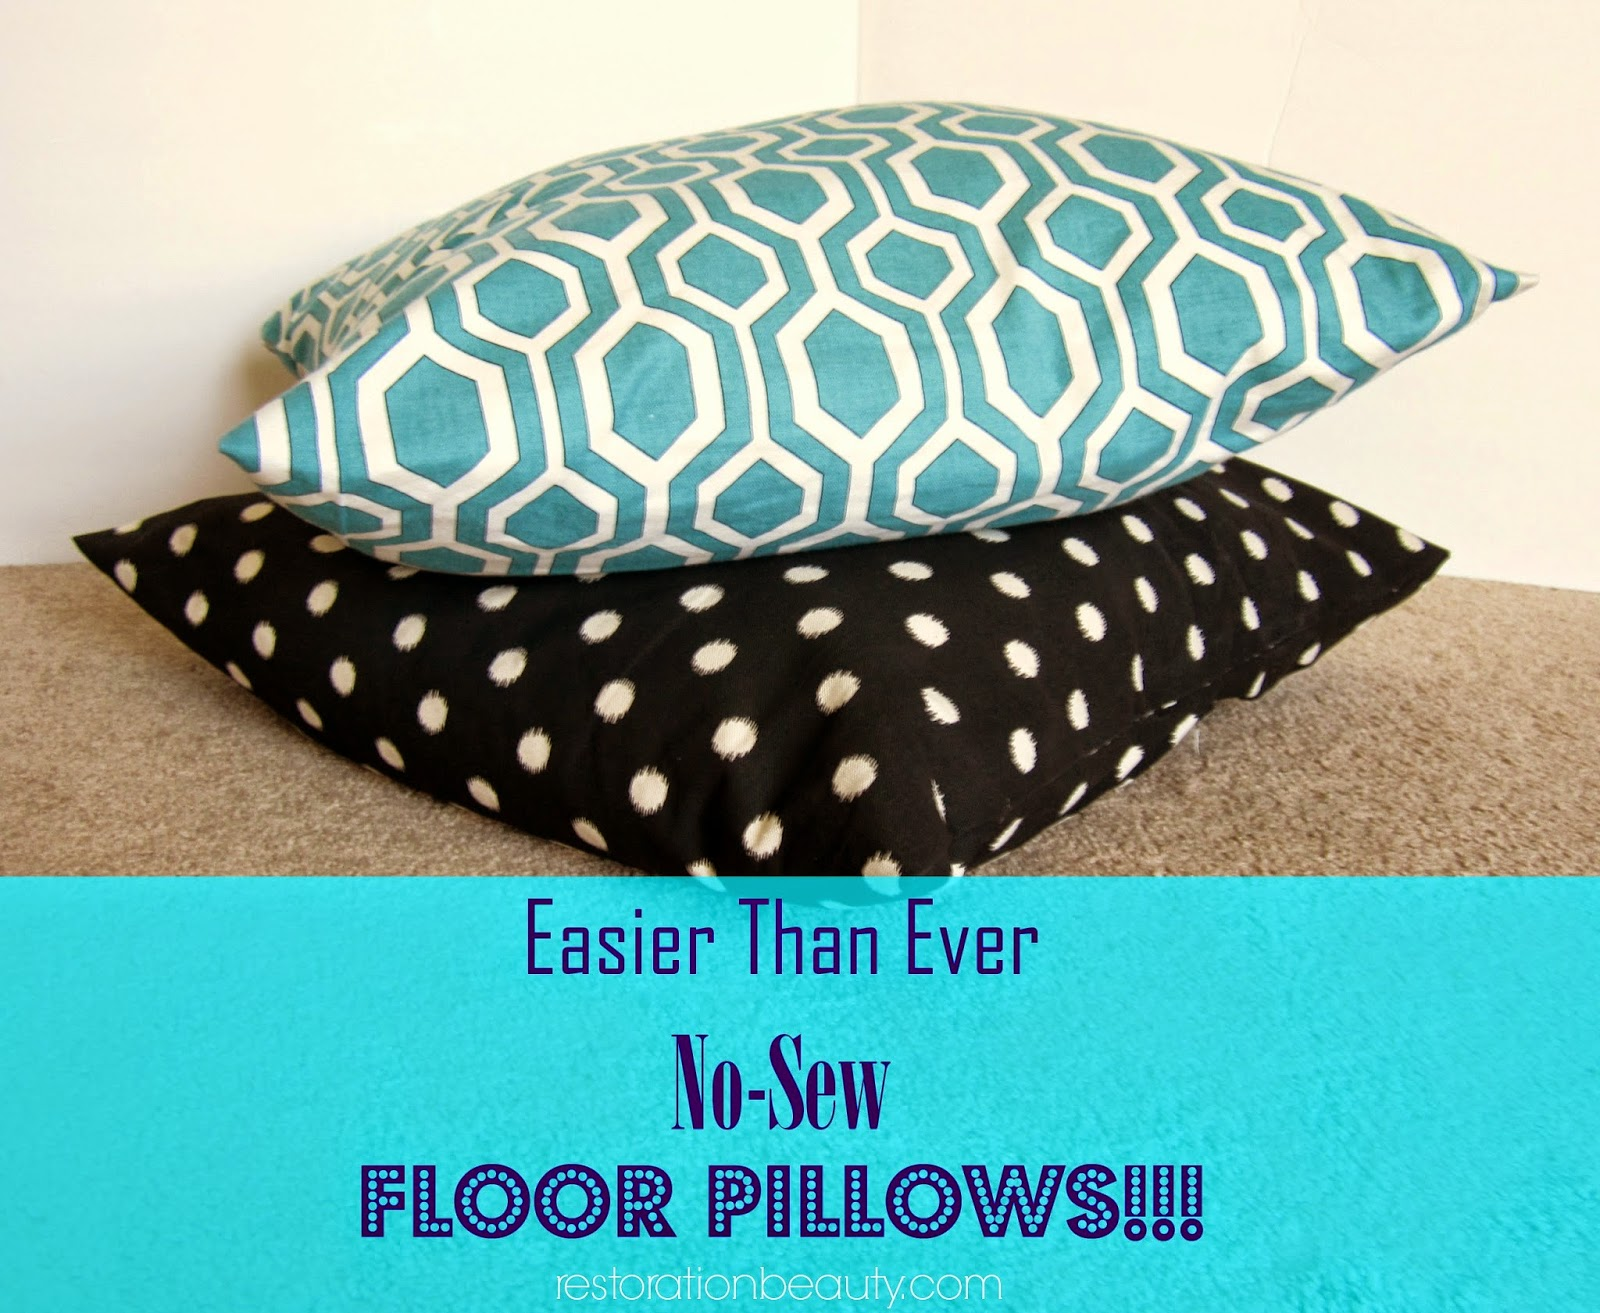 Restoration Beauty Easier Than Ever NoSew Floor Pillows